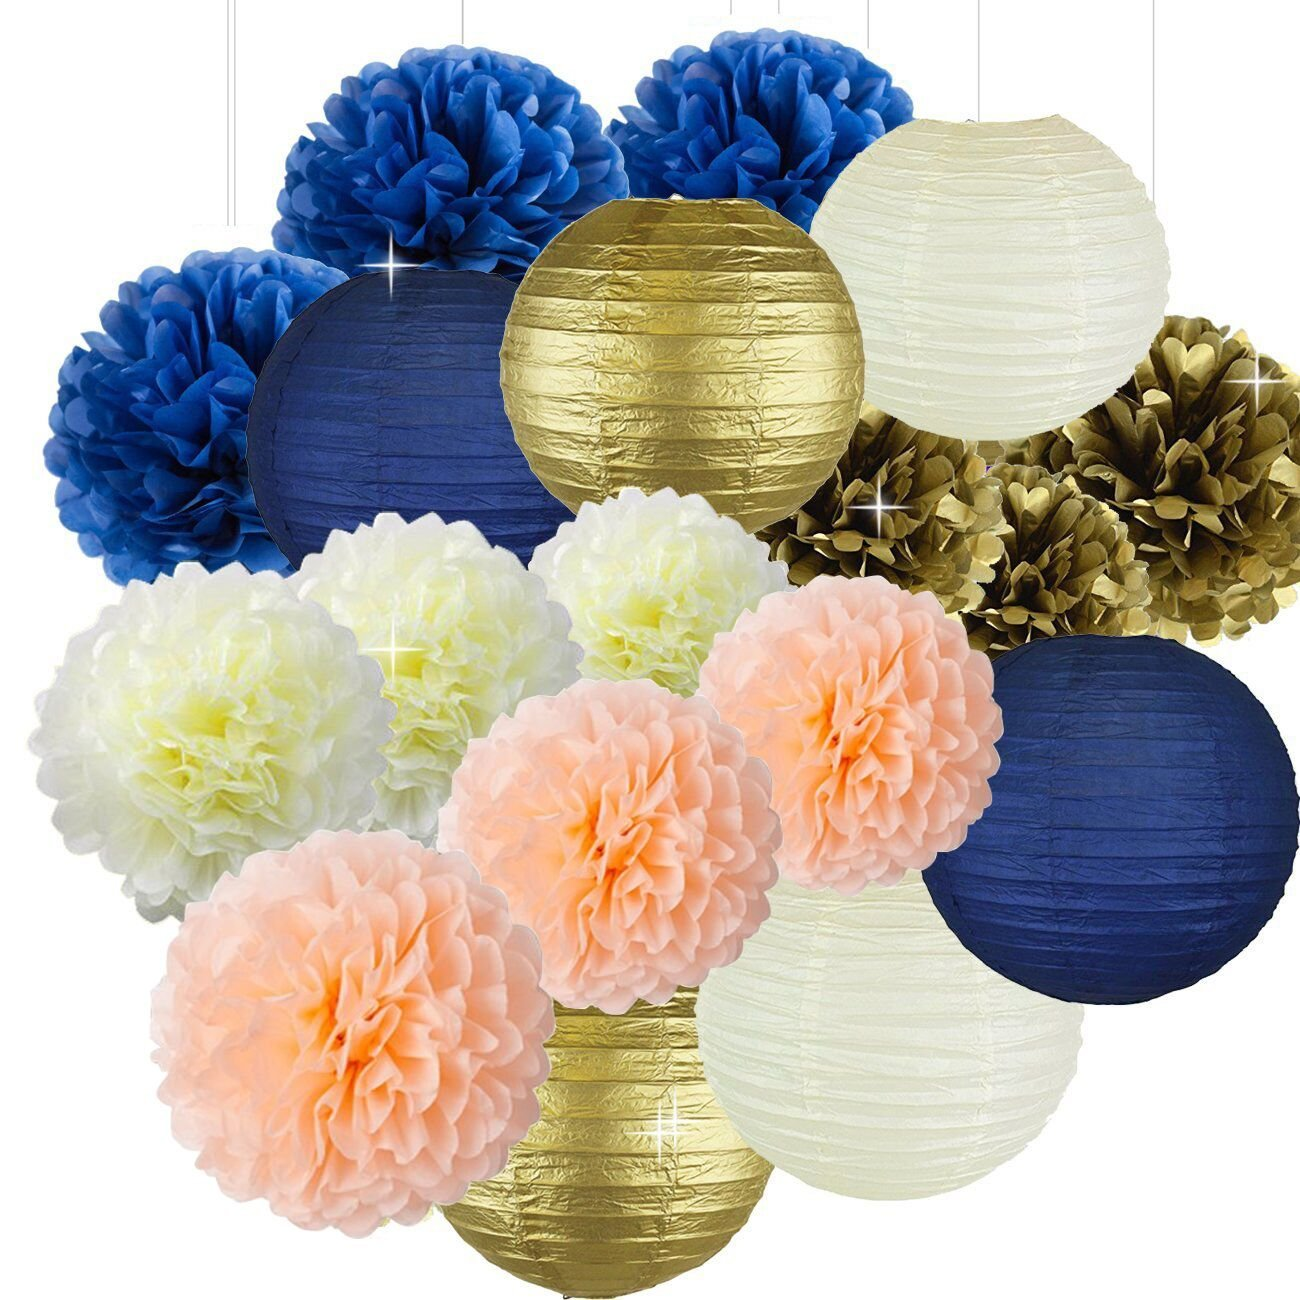 Sorive Bridal Shower Decorations Navy Peach Gold Birthday Tissue Paper Pom Lanterns For Wedding Party